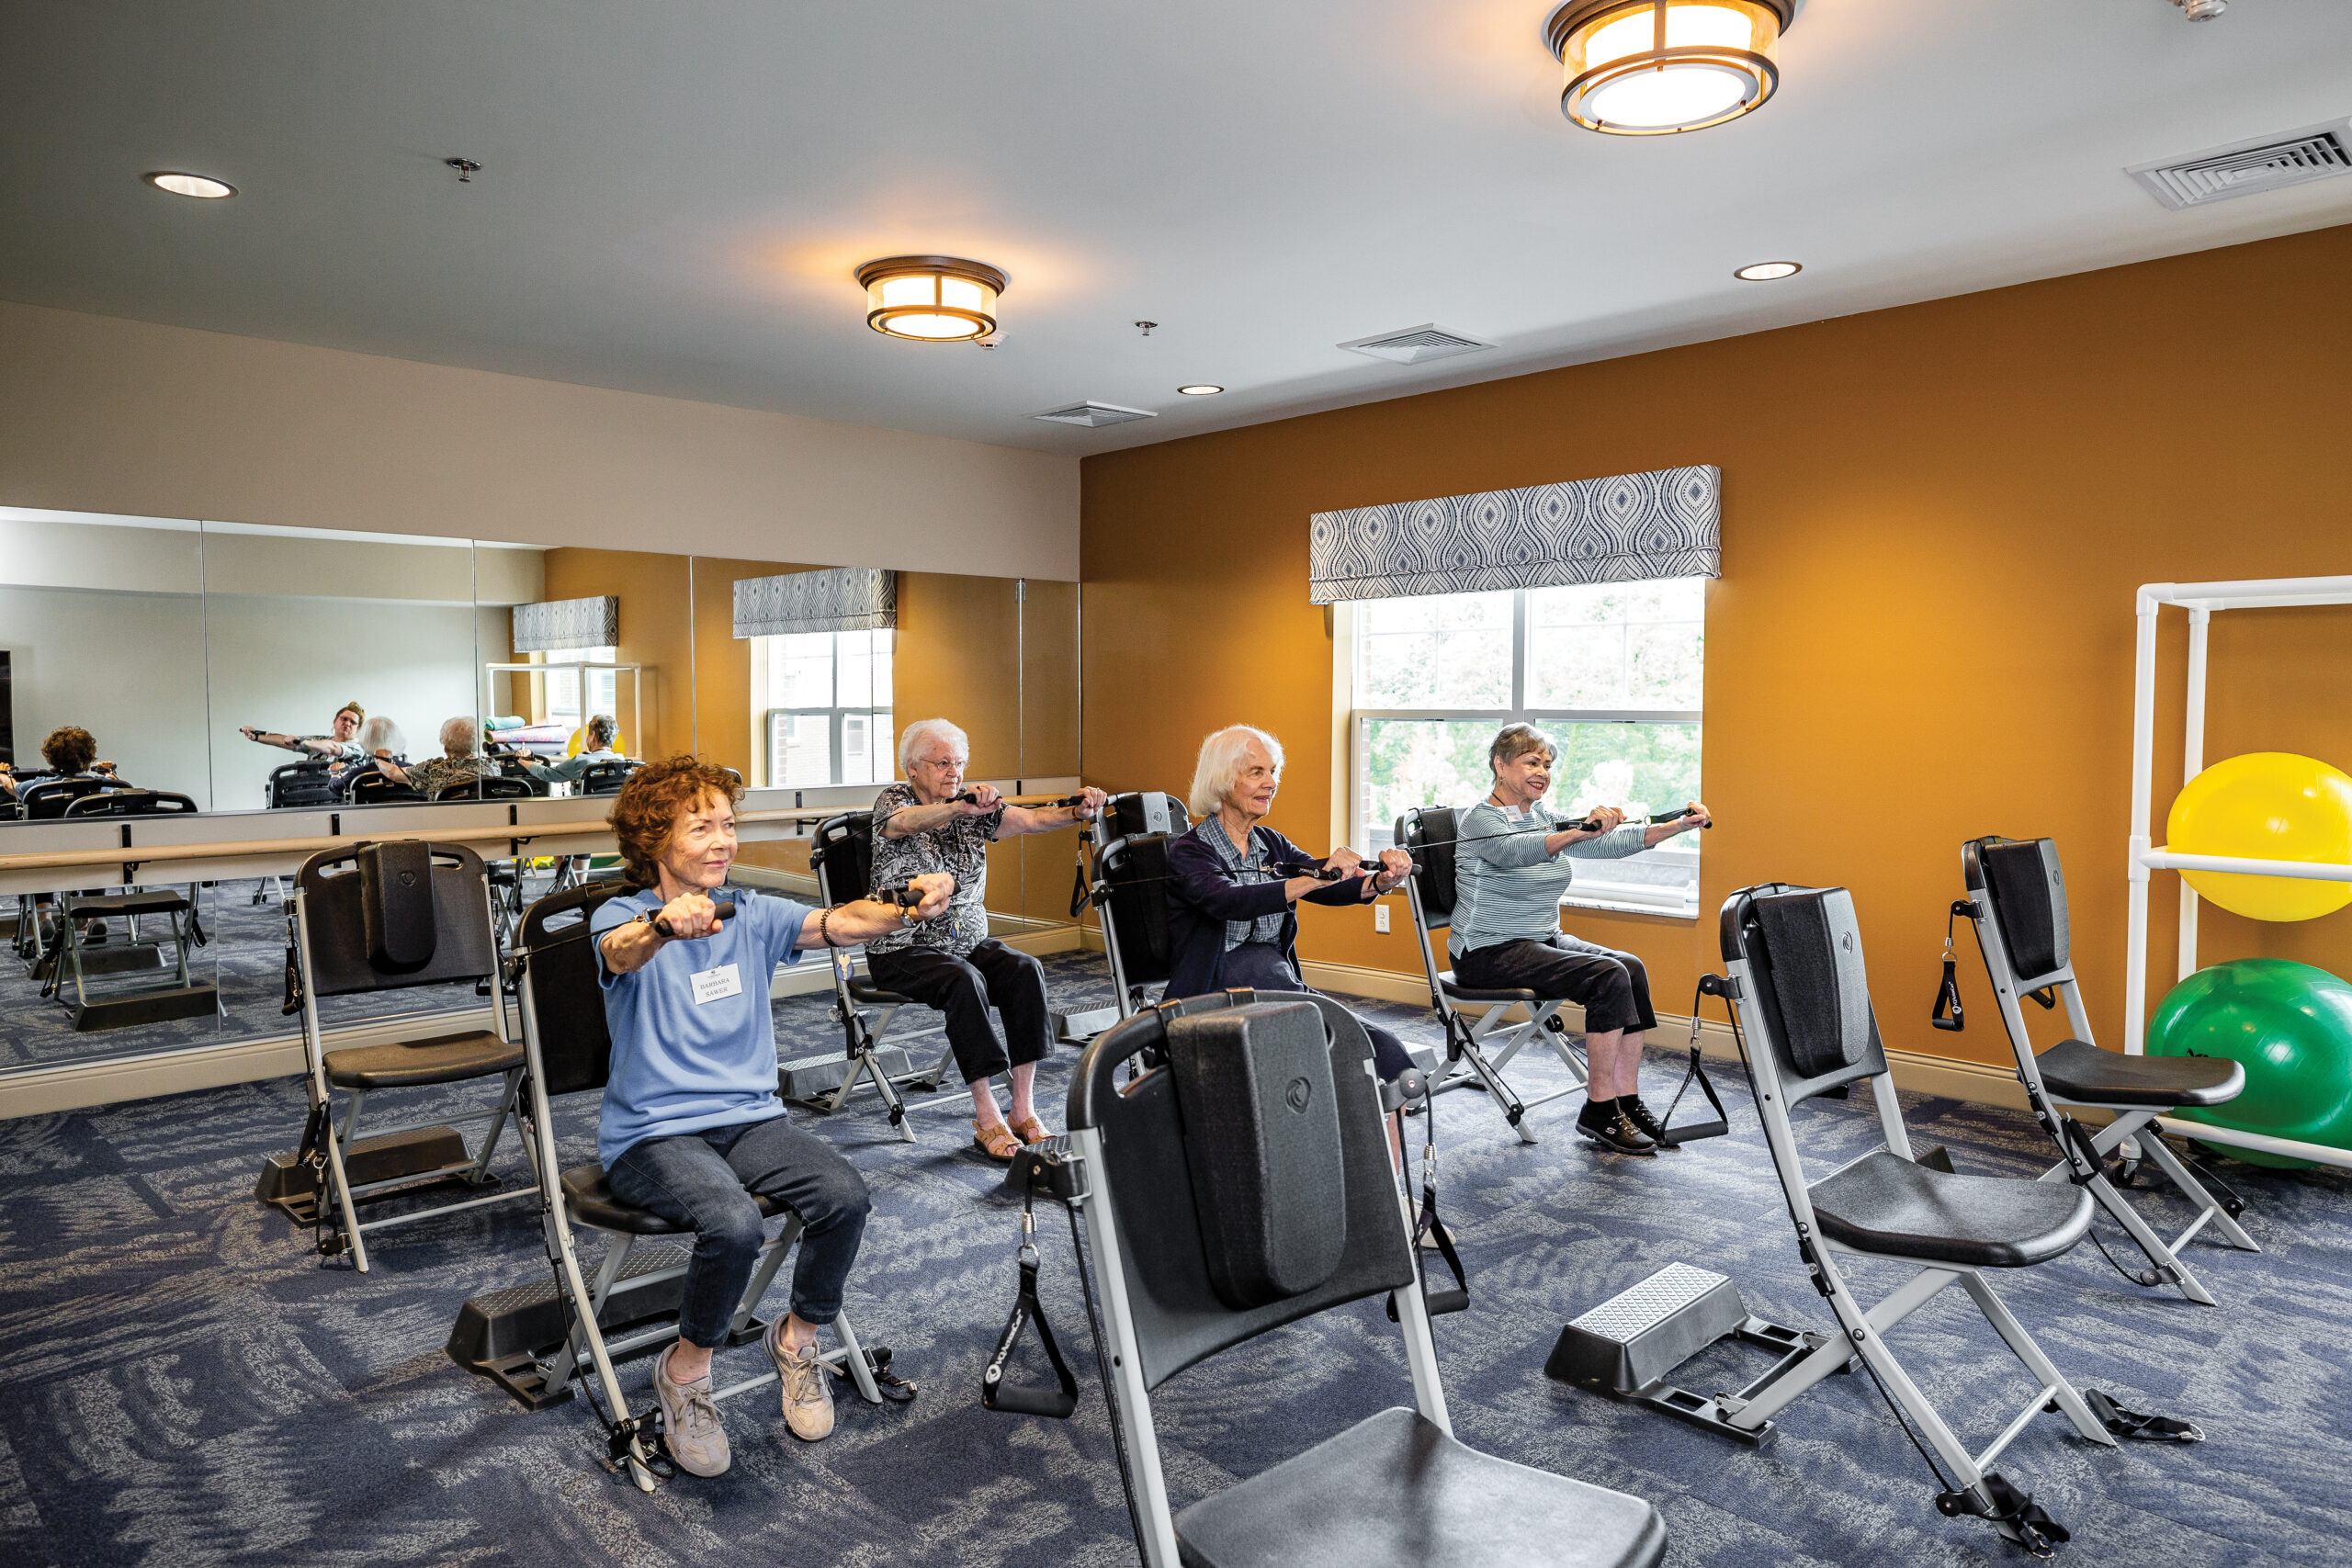 Four women exercising in workout room